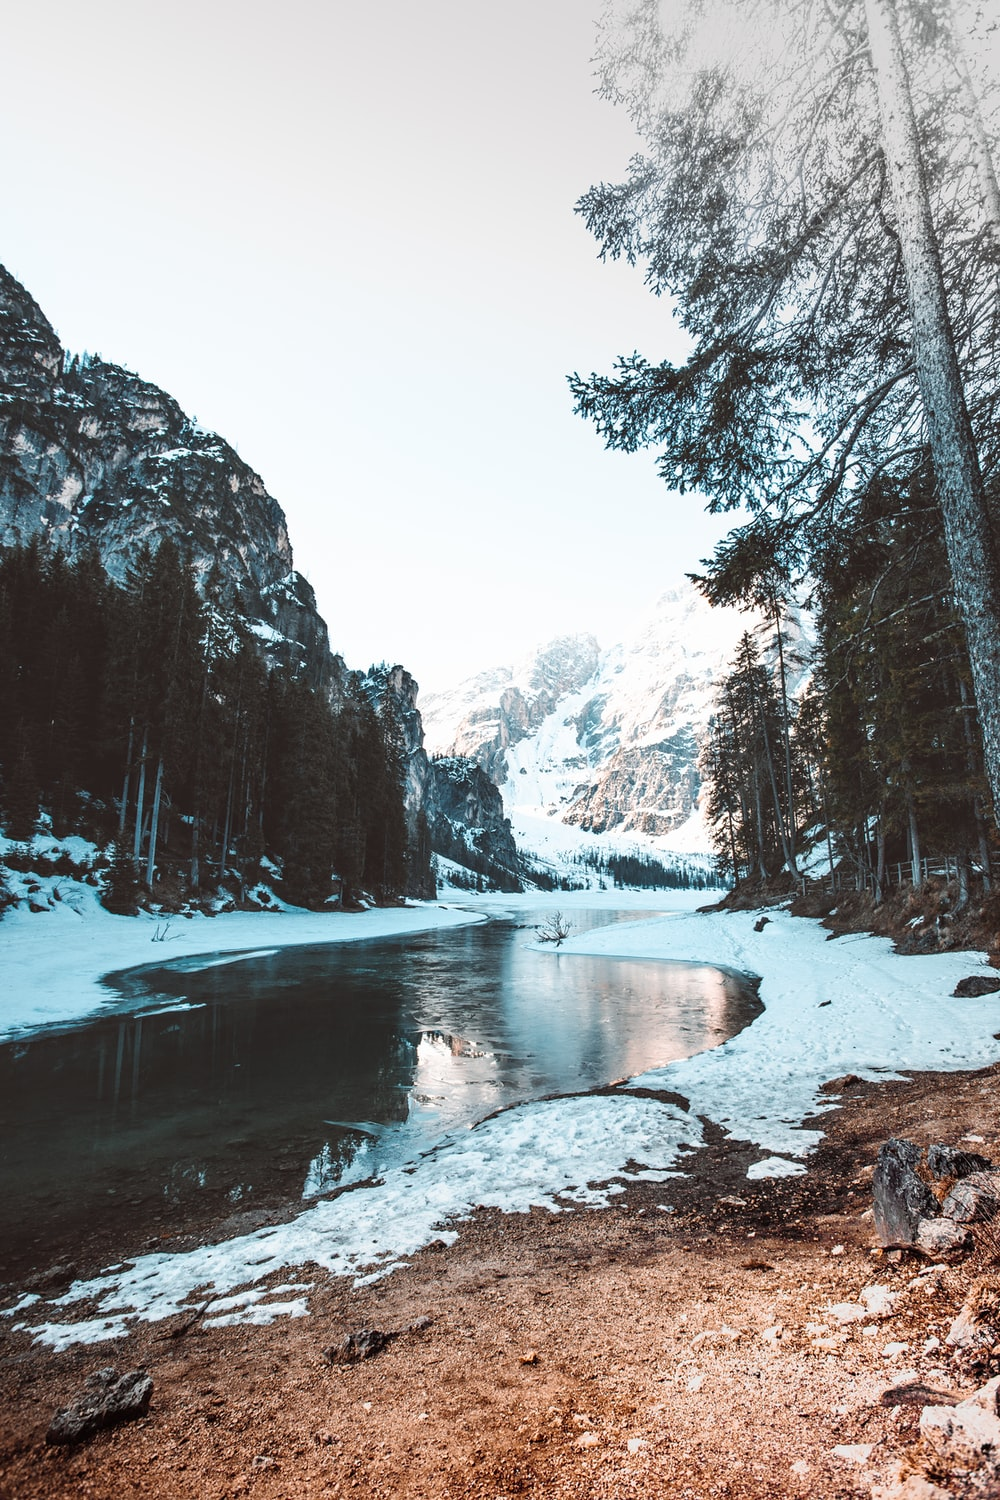 river between trees with snow